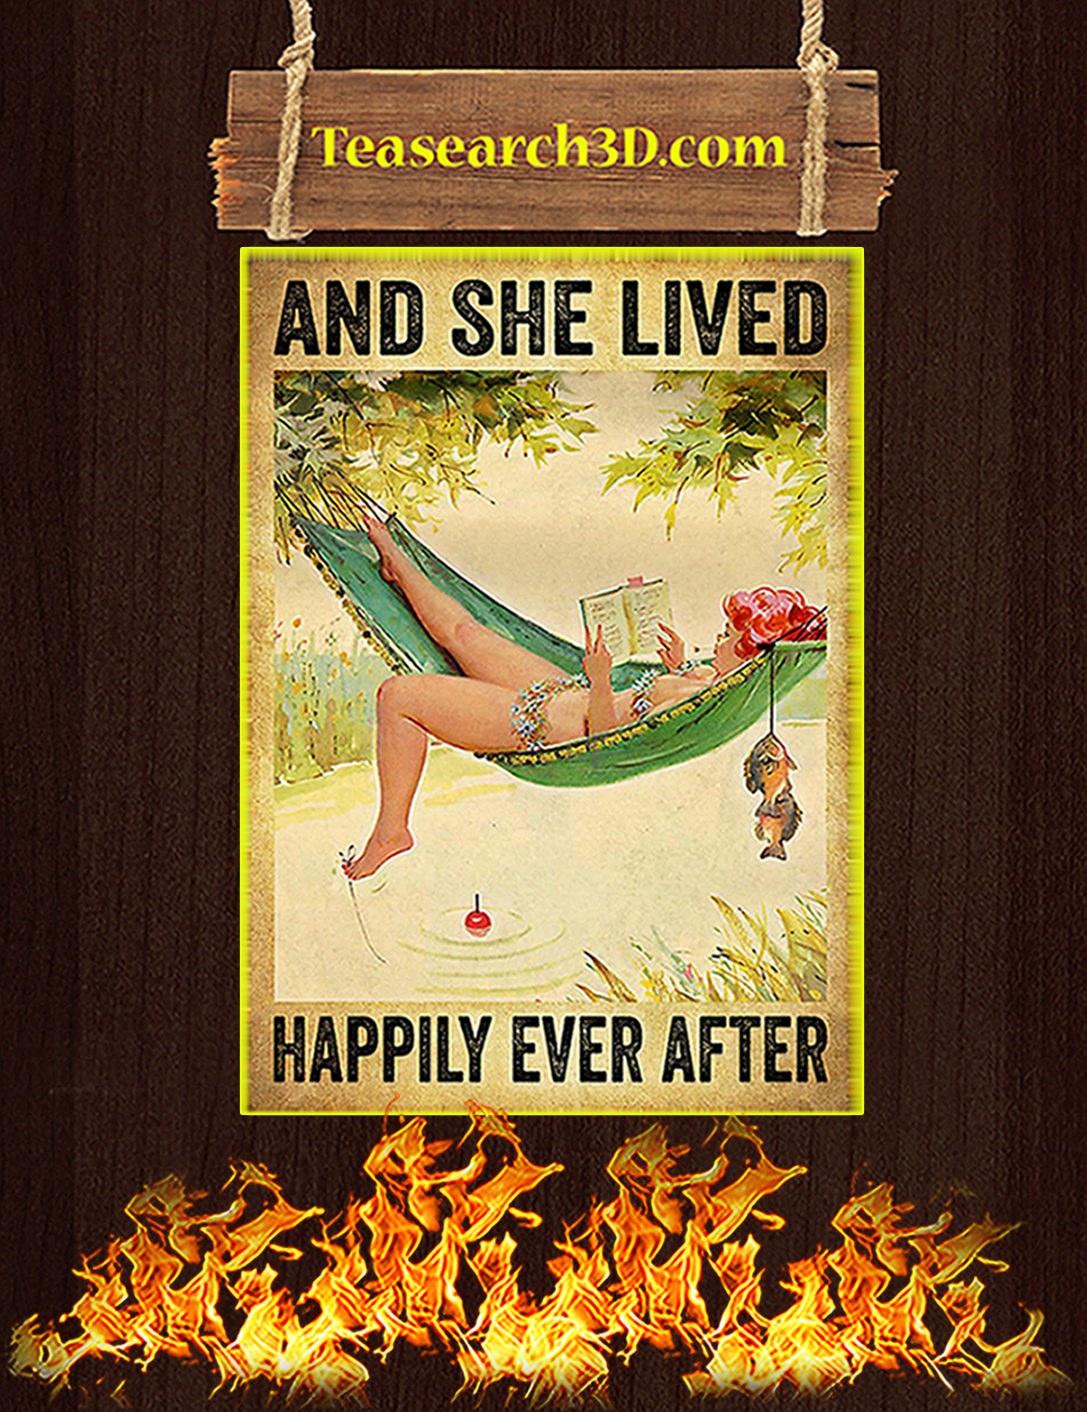 Fishing and she lived happily ever after poster A2